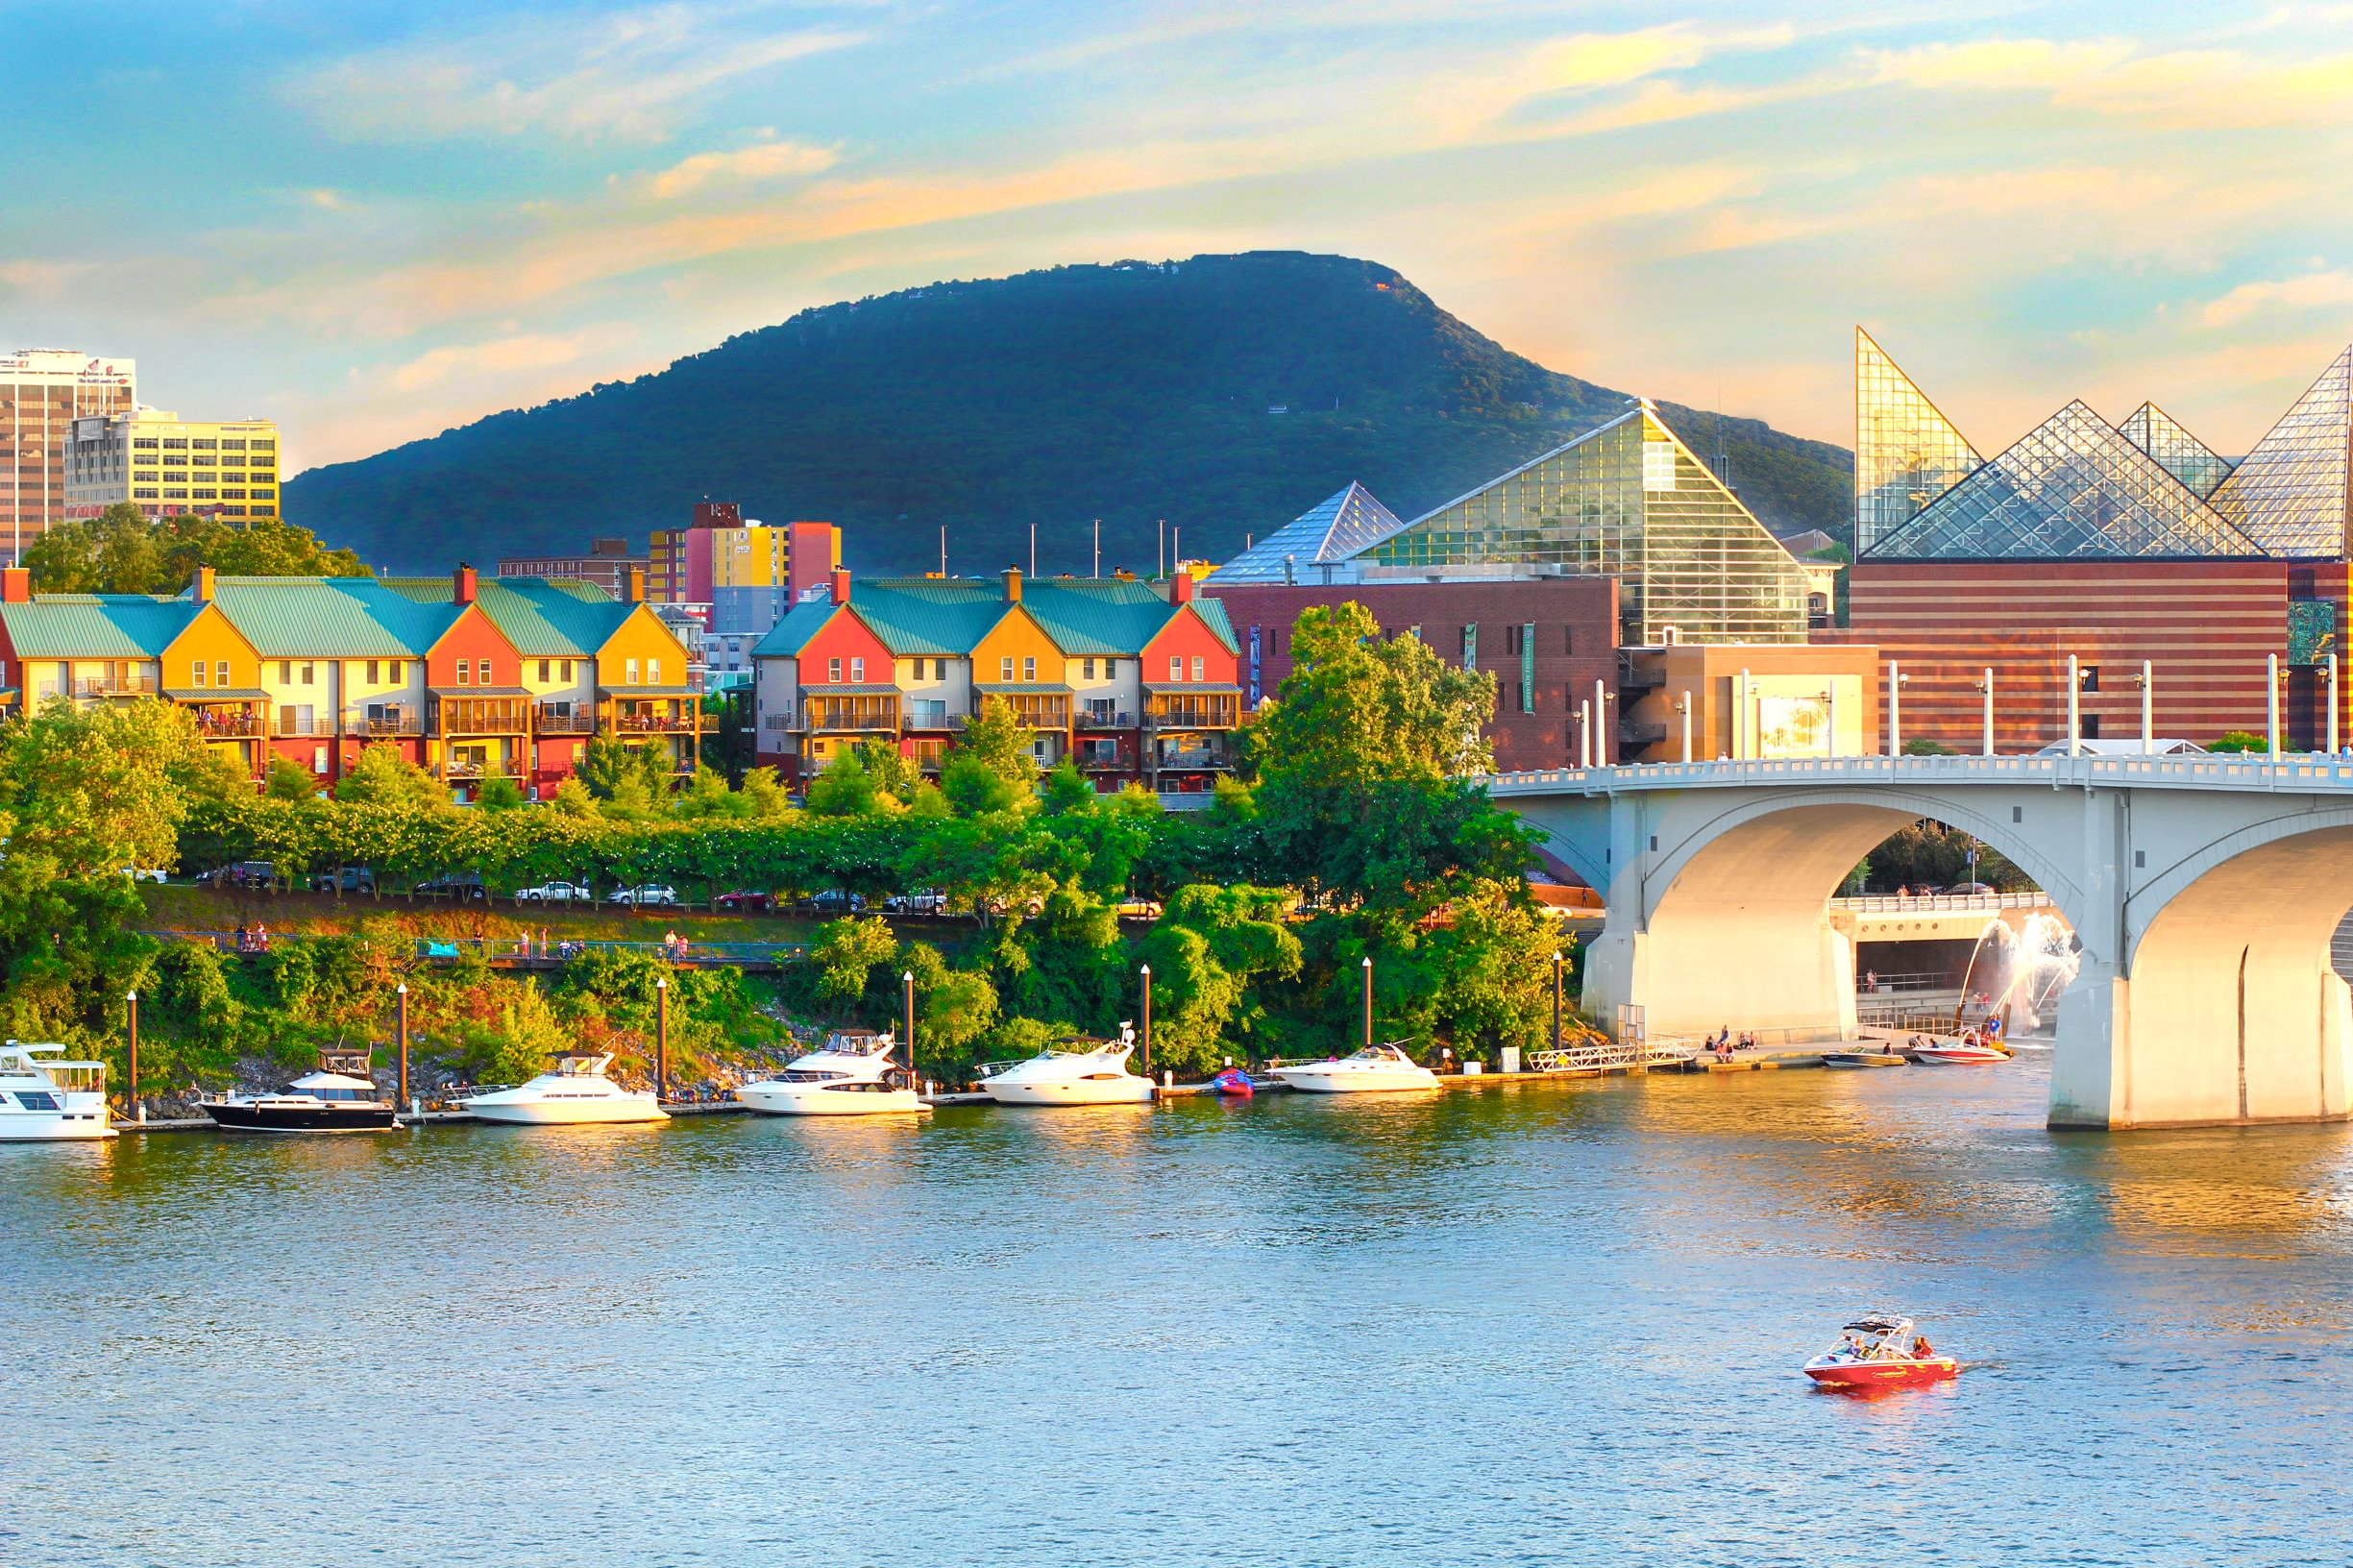 Family visiting soon? Here's a list of things to do in Chattanooga...